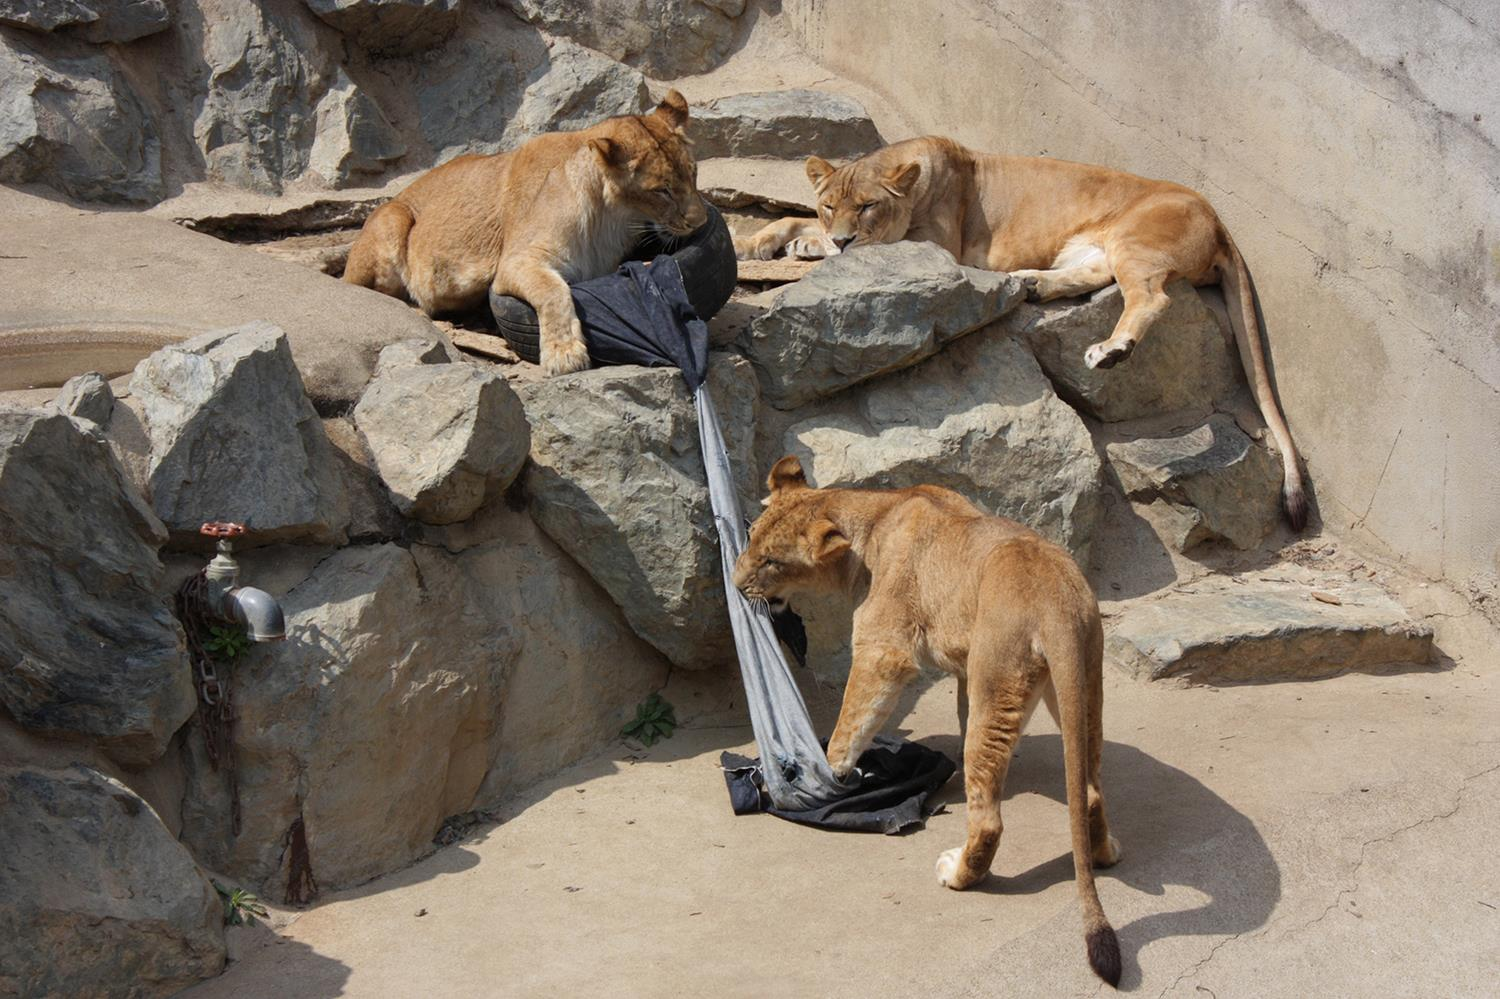 Zoo Jeans Feature Distressed Rips & Tears Made By Lions, Tigers & Bears (Oh My!)